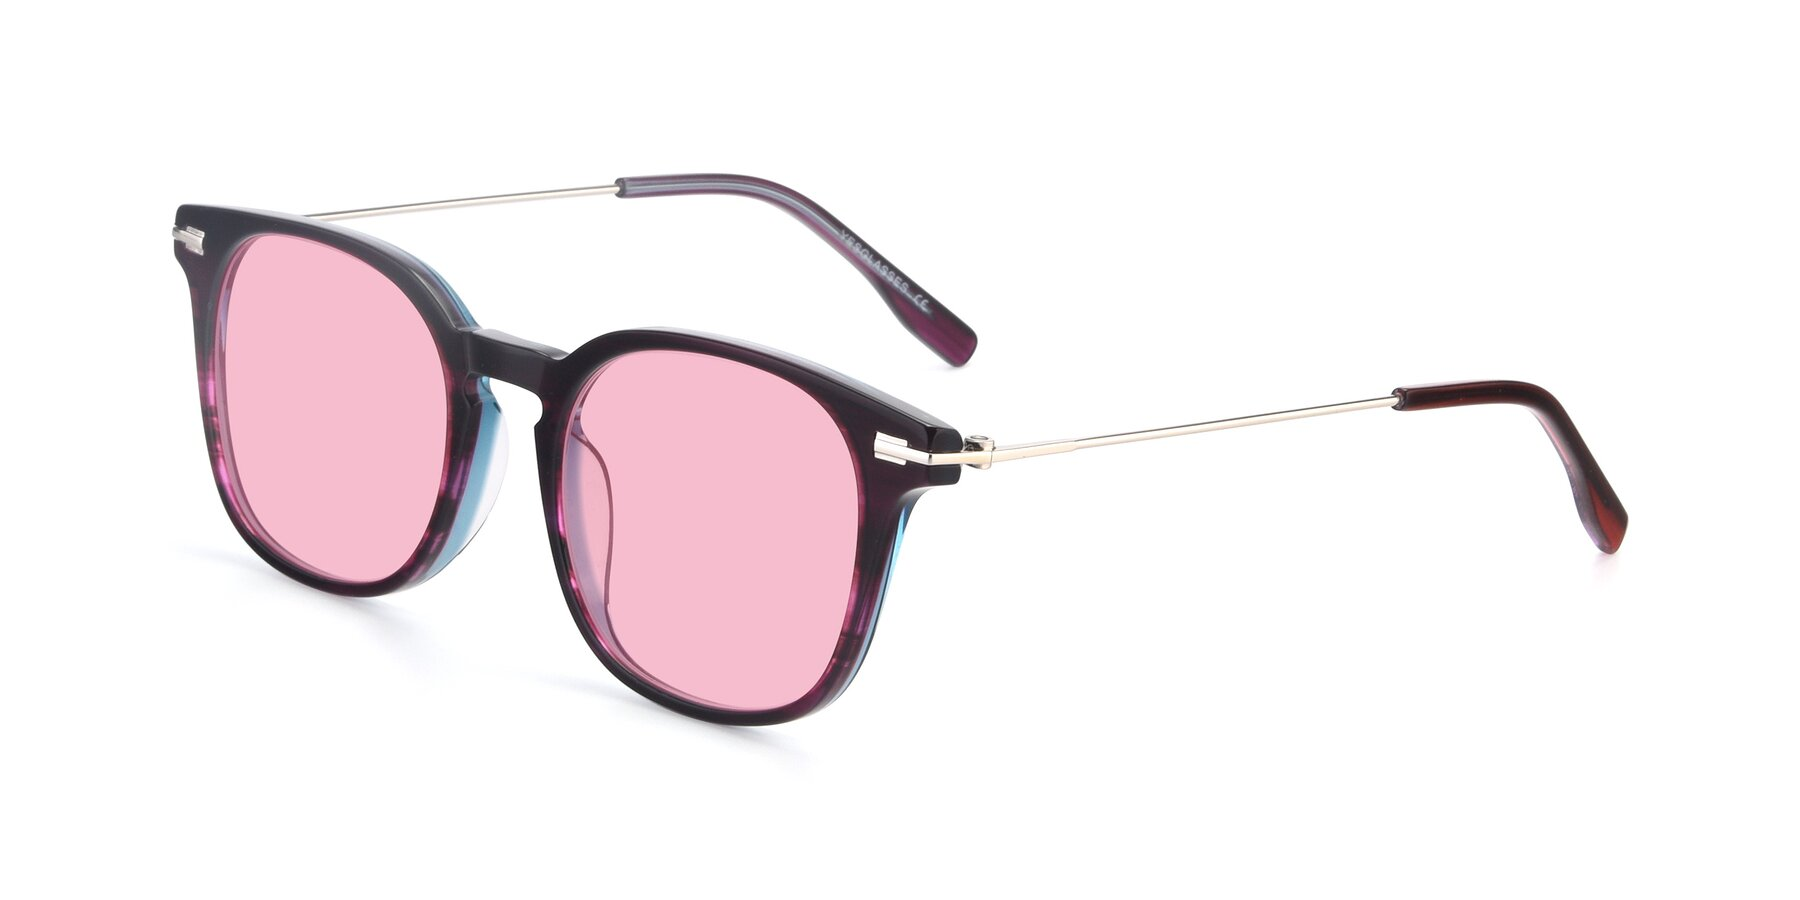 Angle of 17711 in Dark Purple with Medium Pink Tinted Lenses